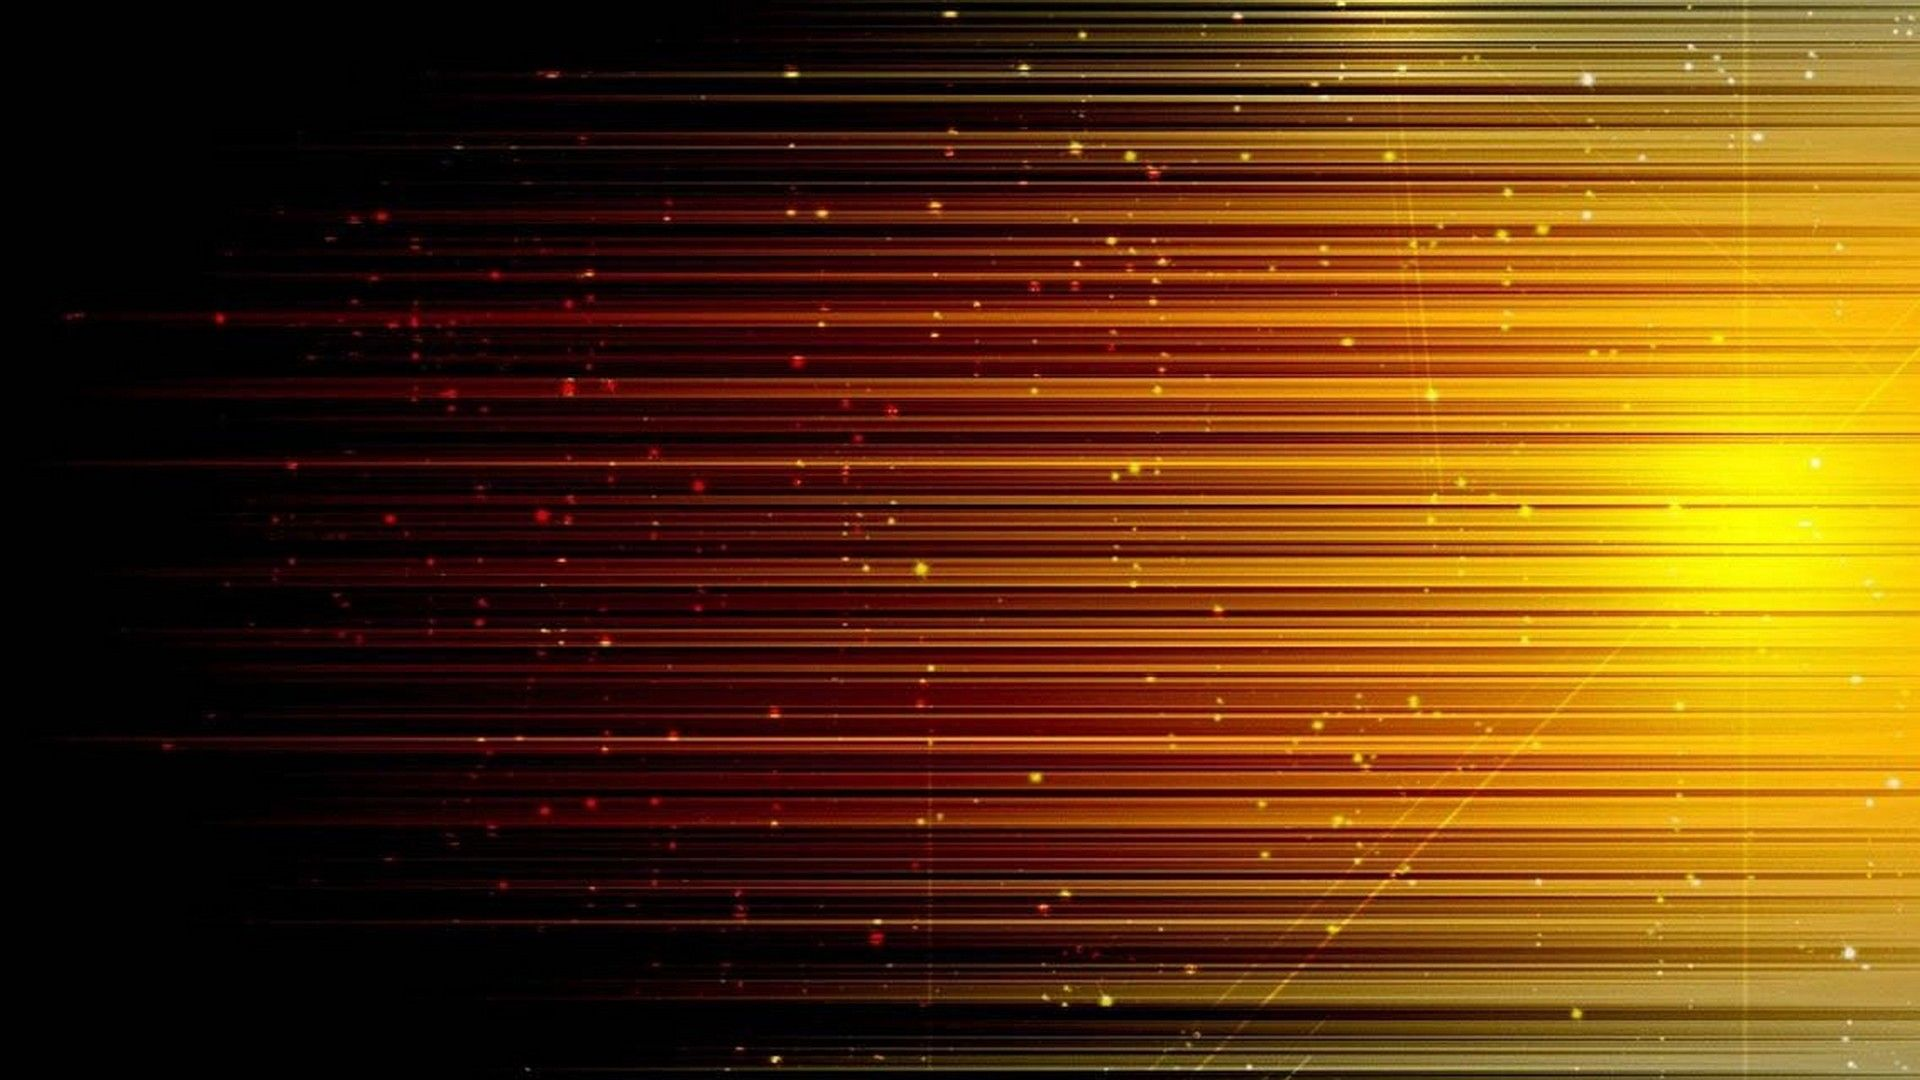 Pc Wallpaper Black And Gold Best Hd Wallpapers Gold Wallpaper Pc Gold Wallpaper Hd Cute Wallpapers